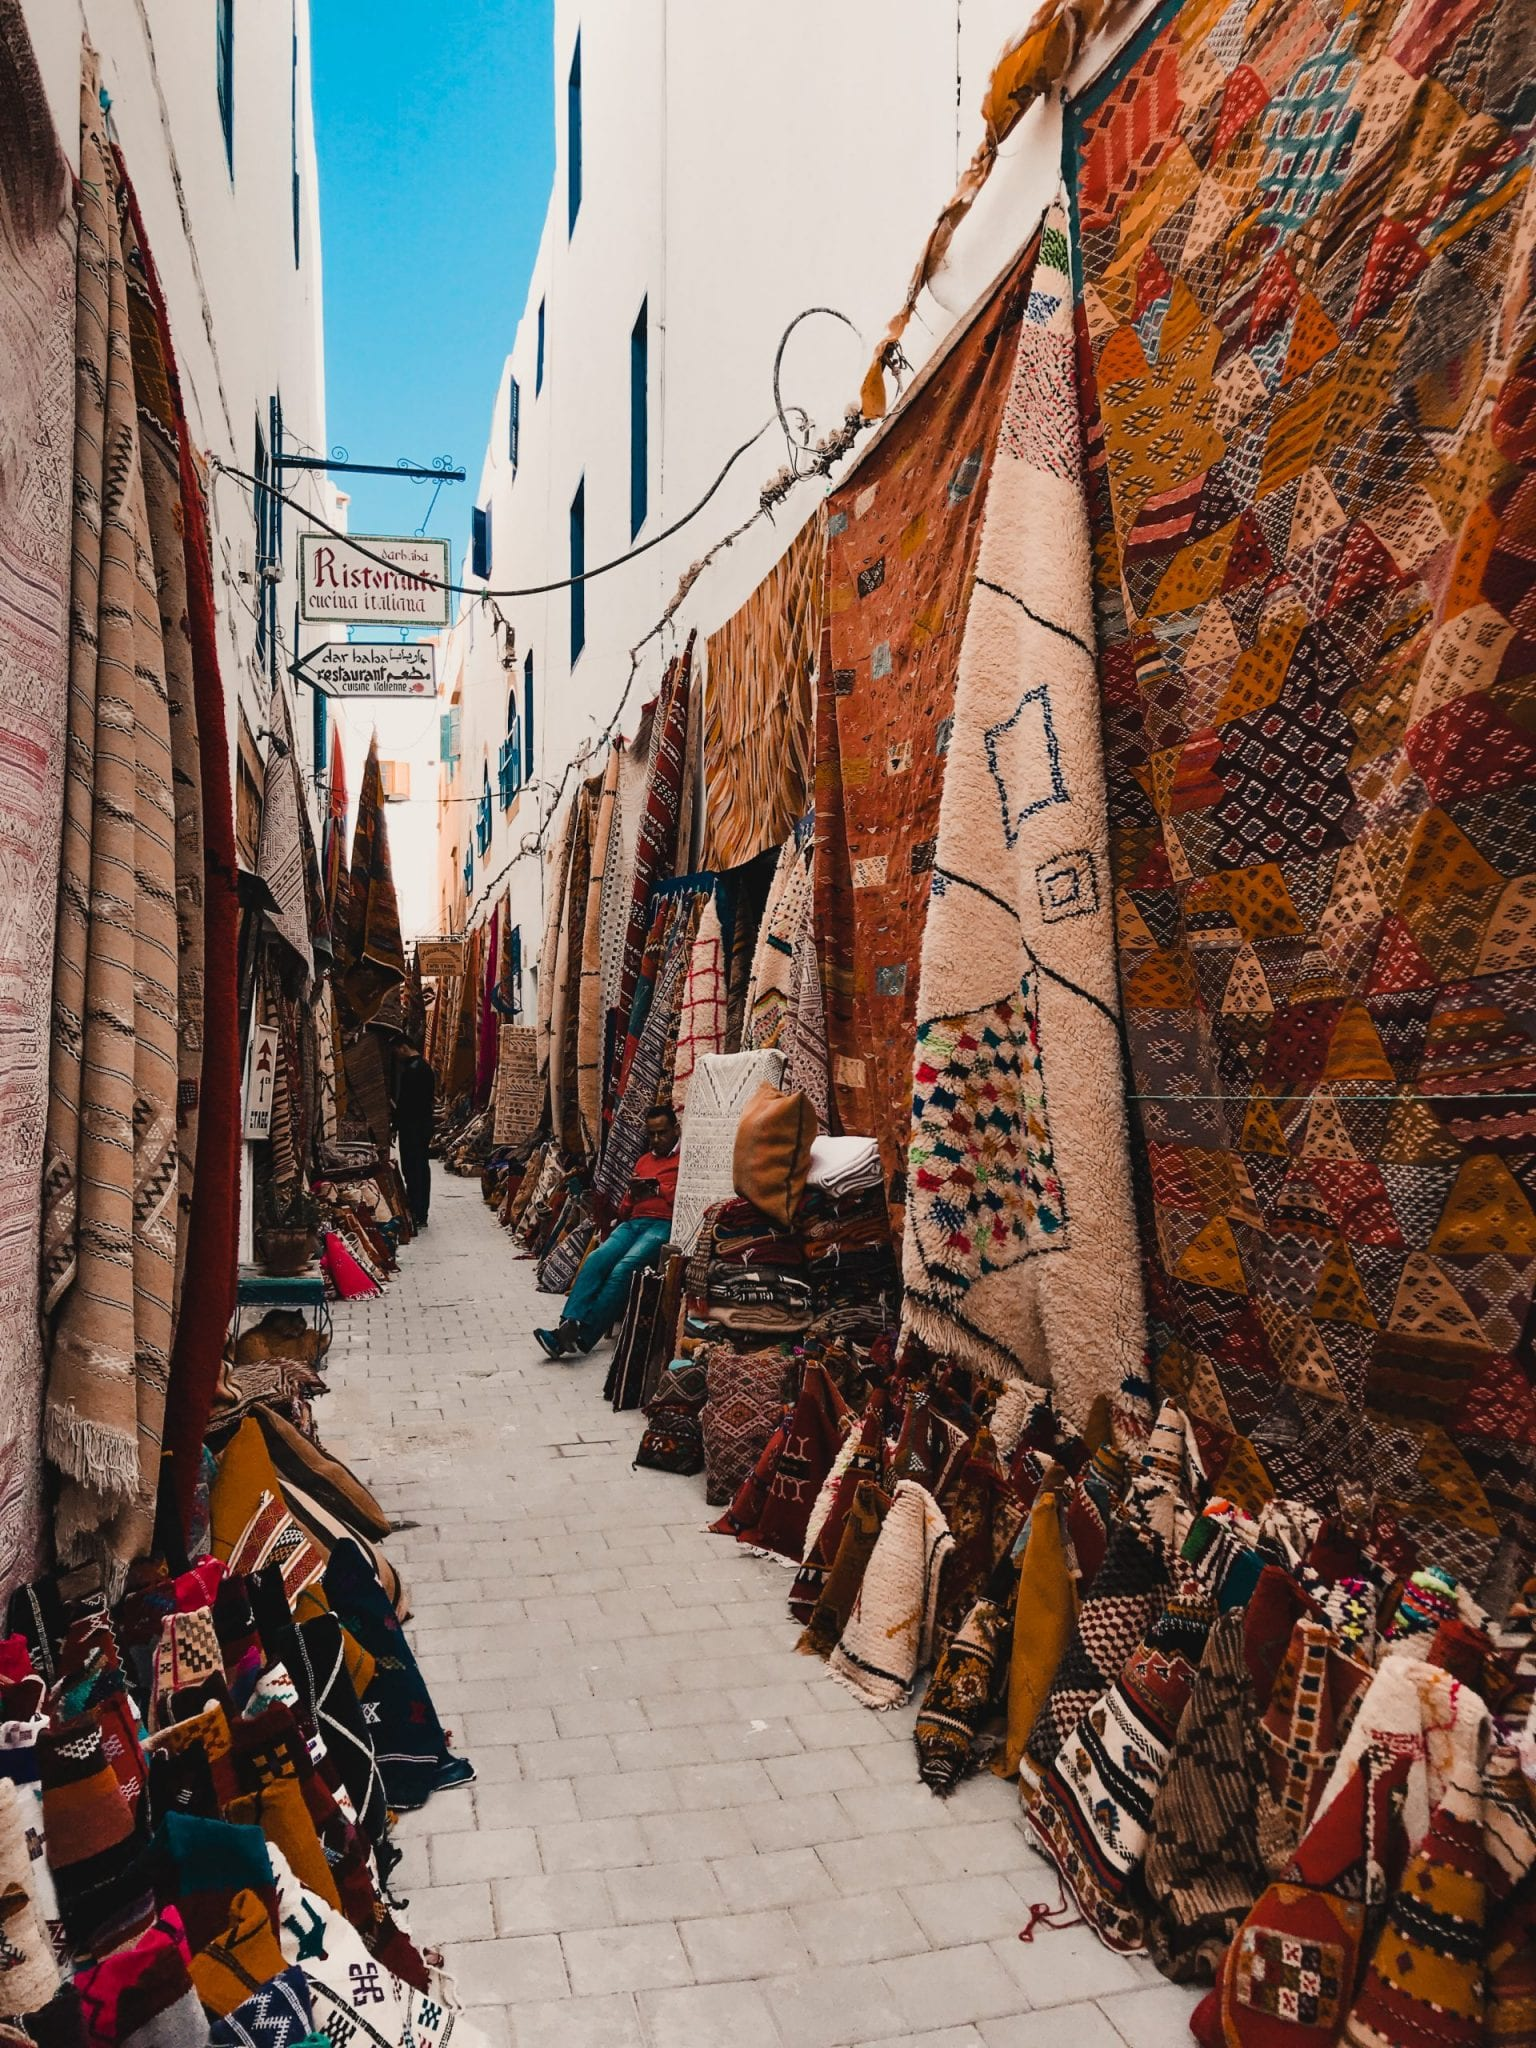 Rugs and textiles in an alleyway, Essaouira Morocco